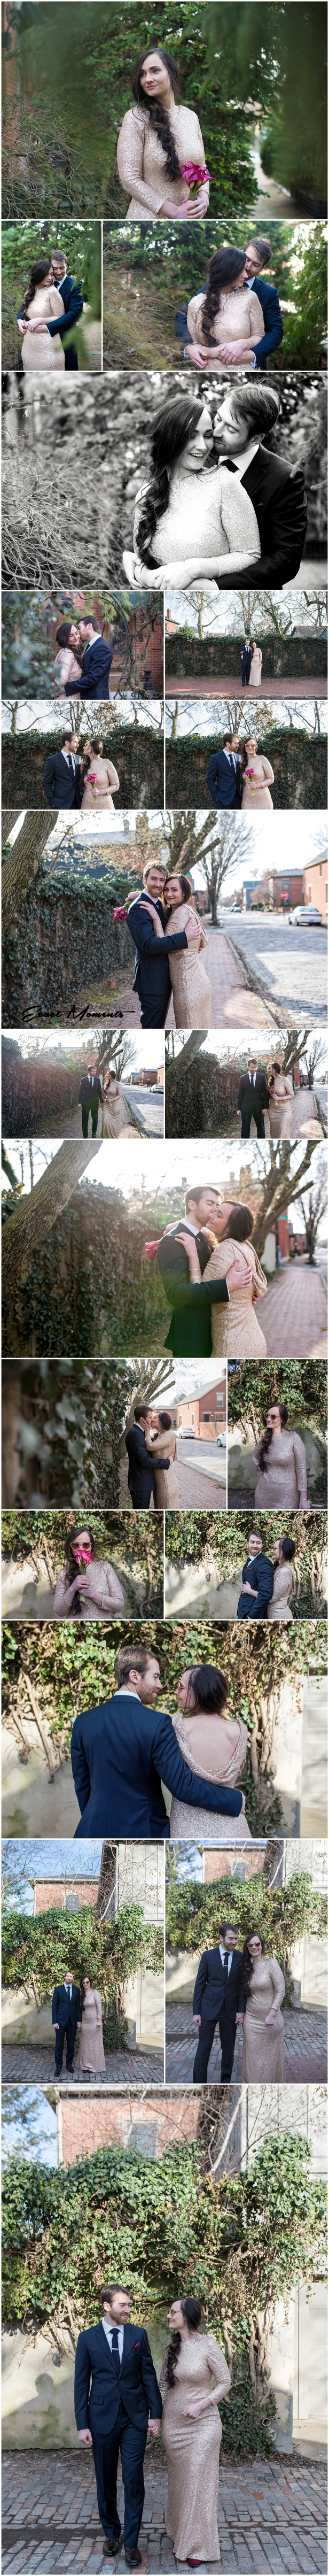 German Village Bride and Groom photos